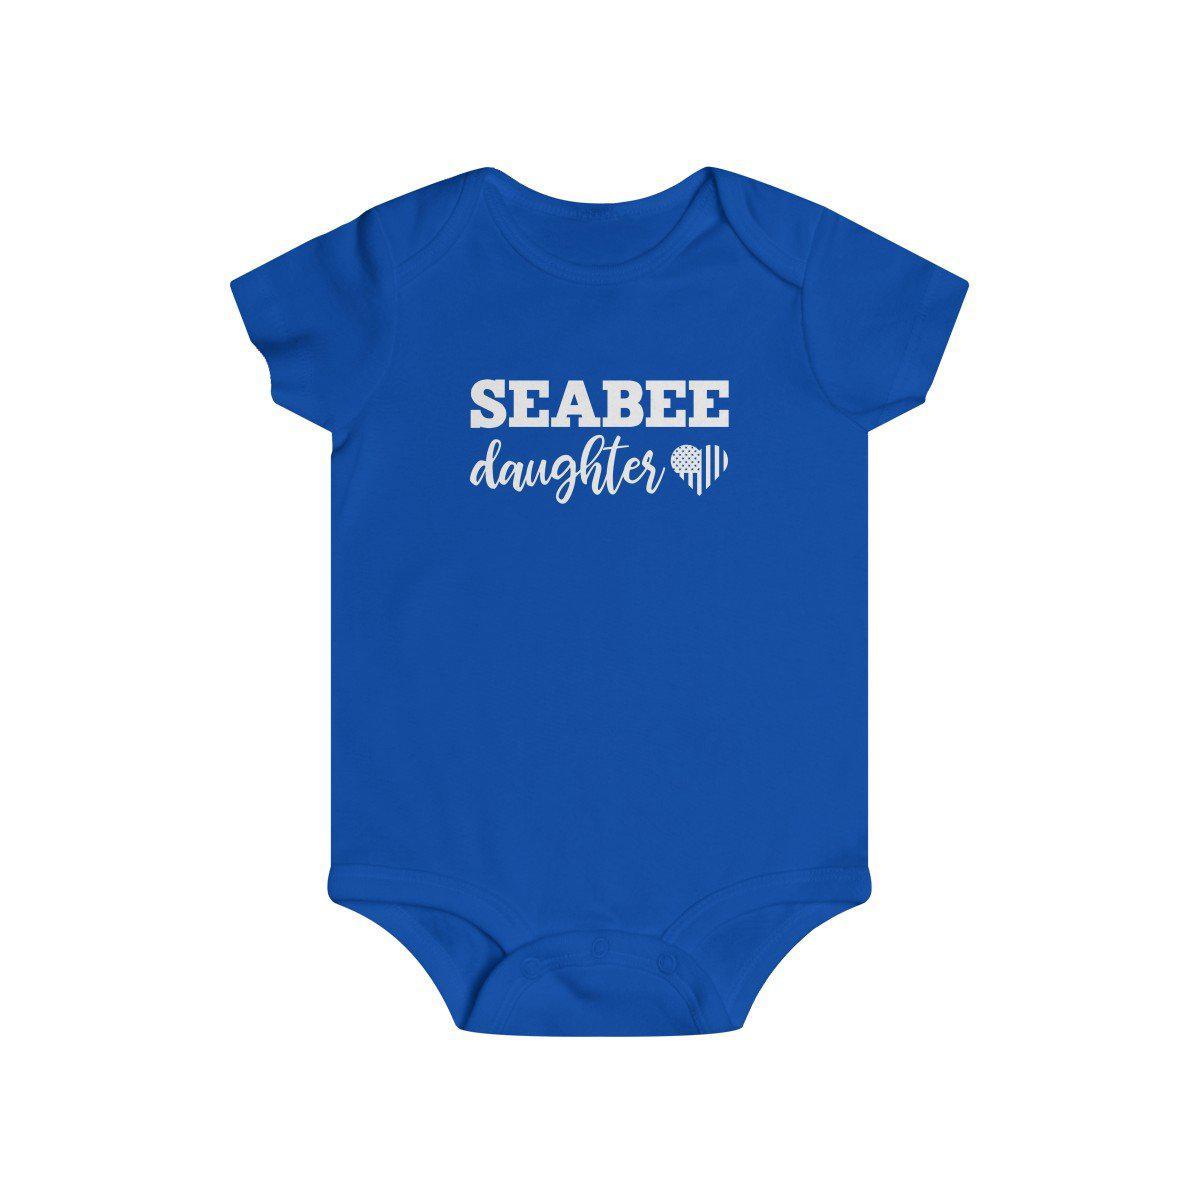 Seabee Daughter Infant Rip Snap Tee